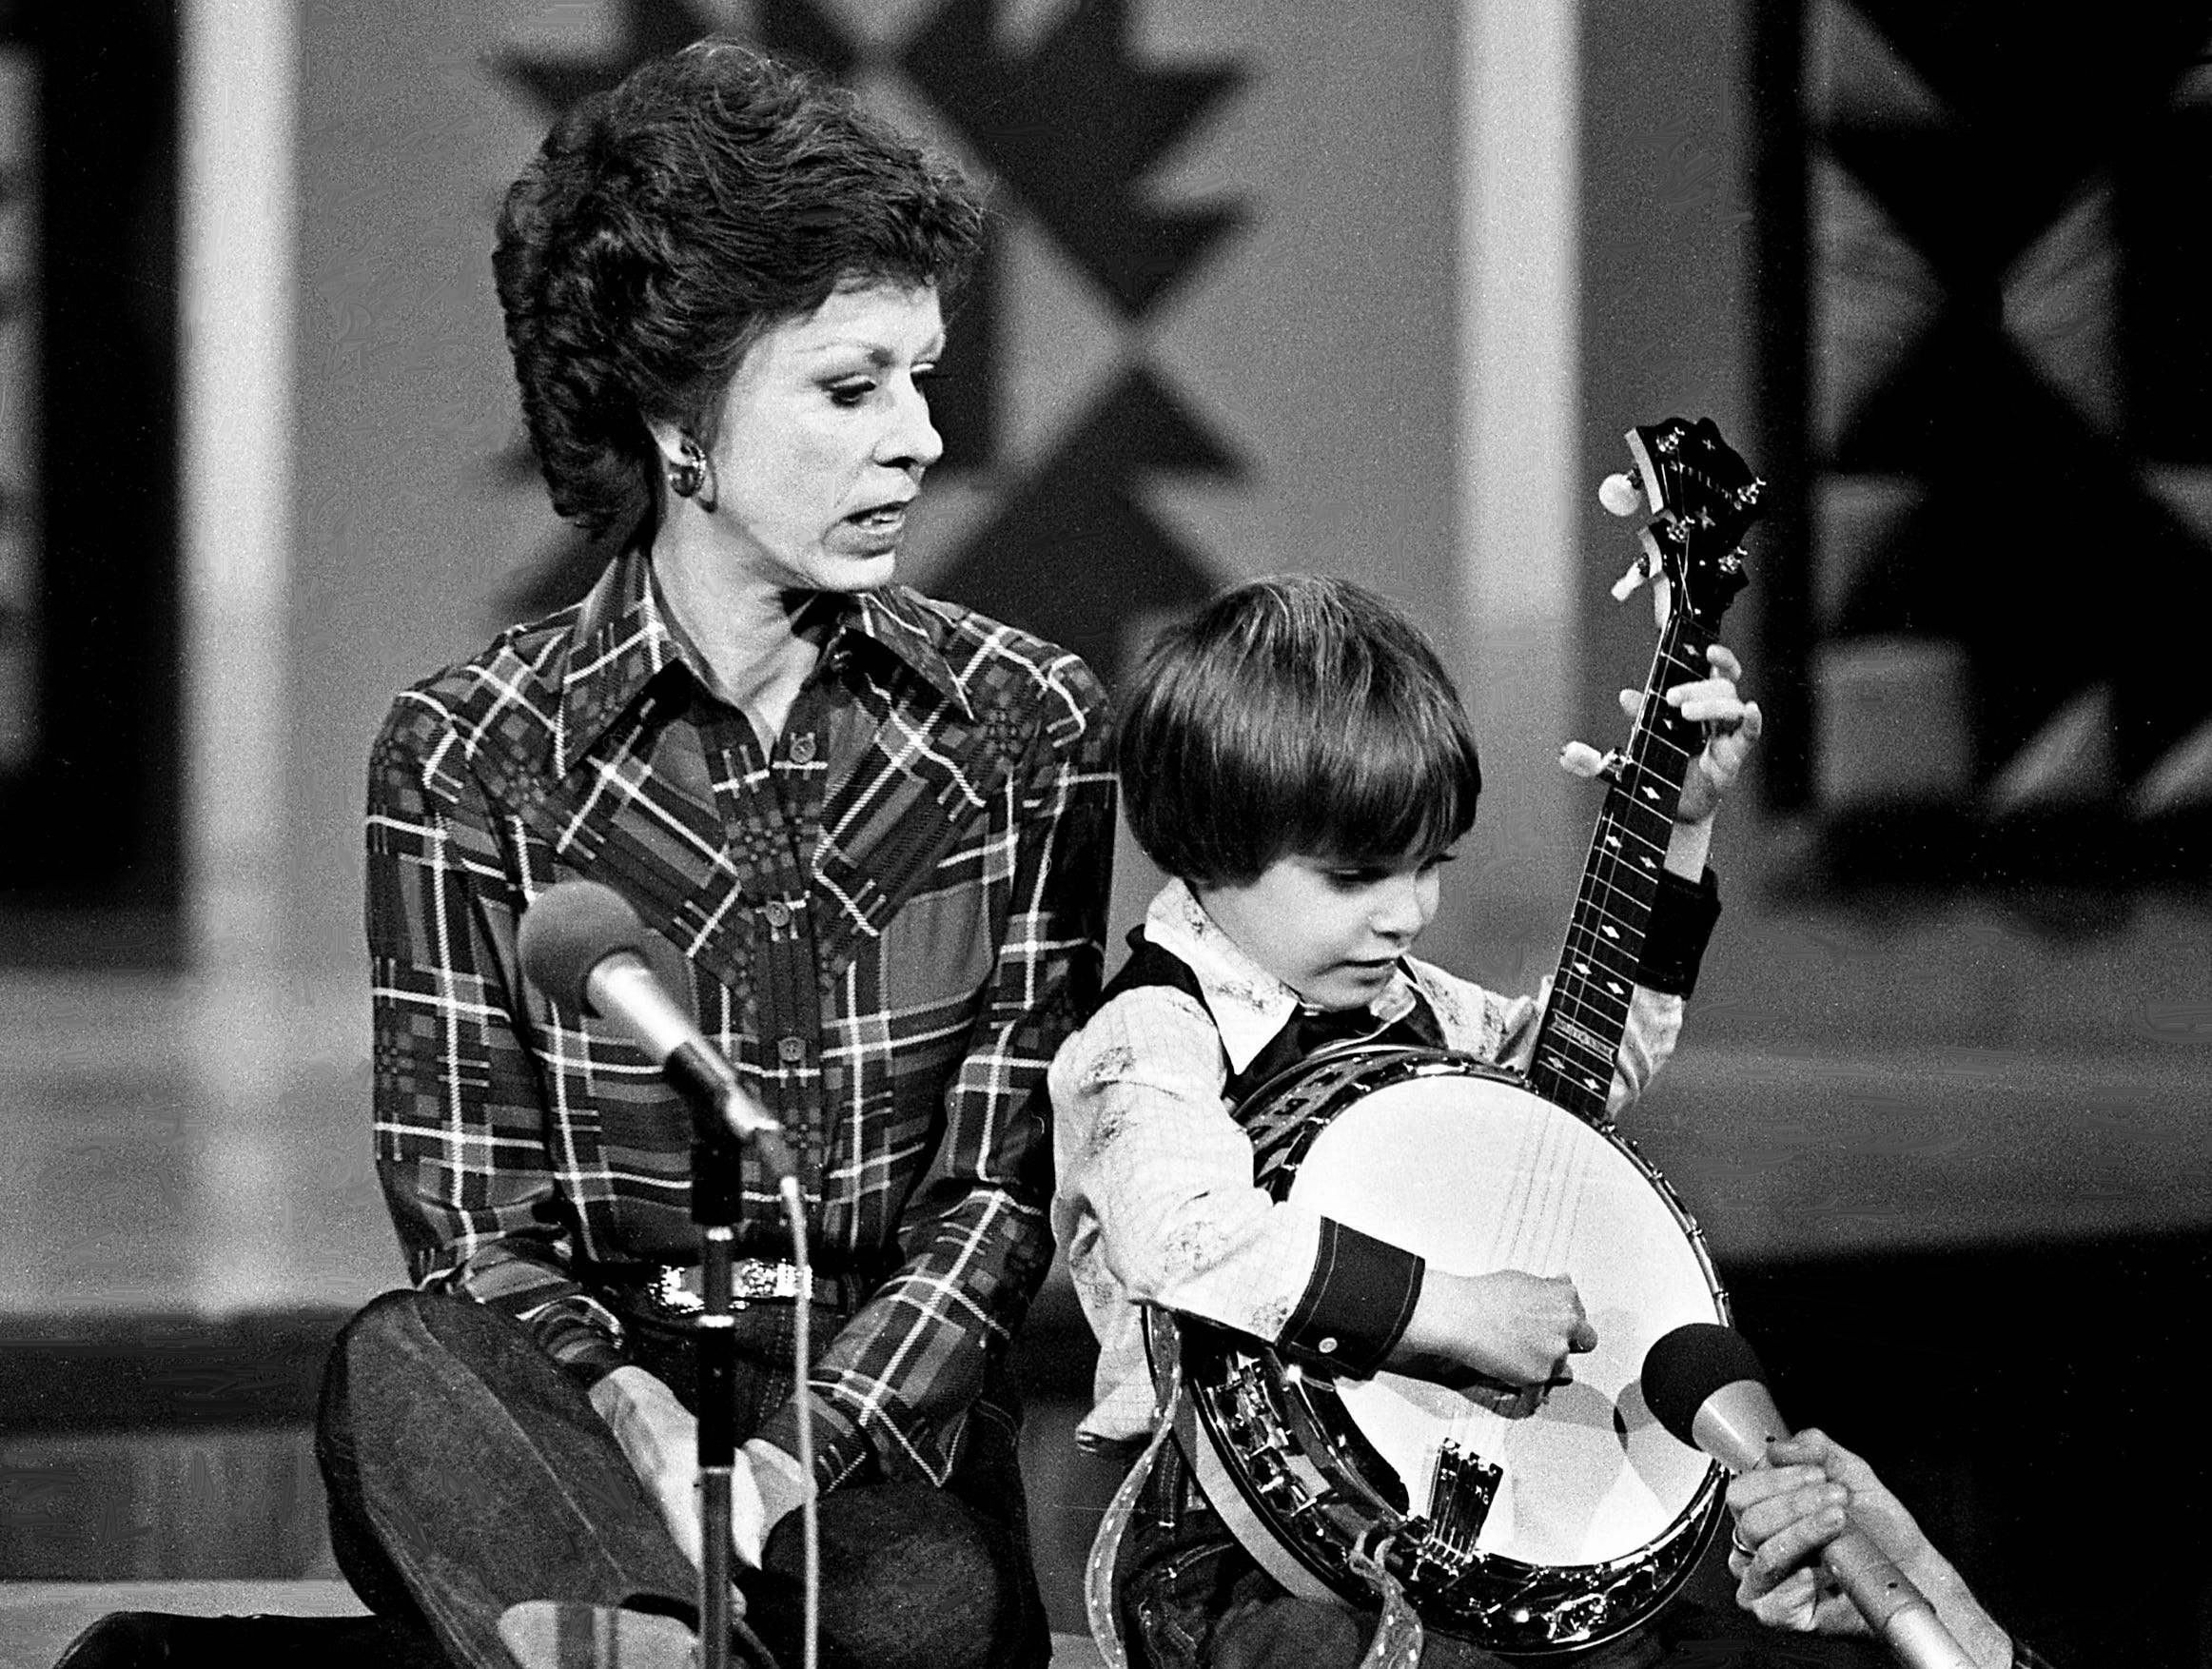 """Six-year-old banjo wizard Lewis Phillips, right, is teaching Carol Burnett how to play the banjo during the """"No one picks like a Nashville picker"""" skit during the taping of the """"Dolly and Carol in Nashville"""" television special before a packed audience at the Grand Ole Opry House Jan. 10, 1979. From the audience, banjo standouts Bashful Brother Oswald and Ramona Jones also gave aid to Burnett."""